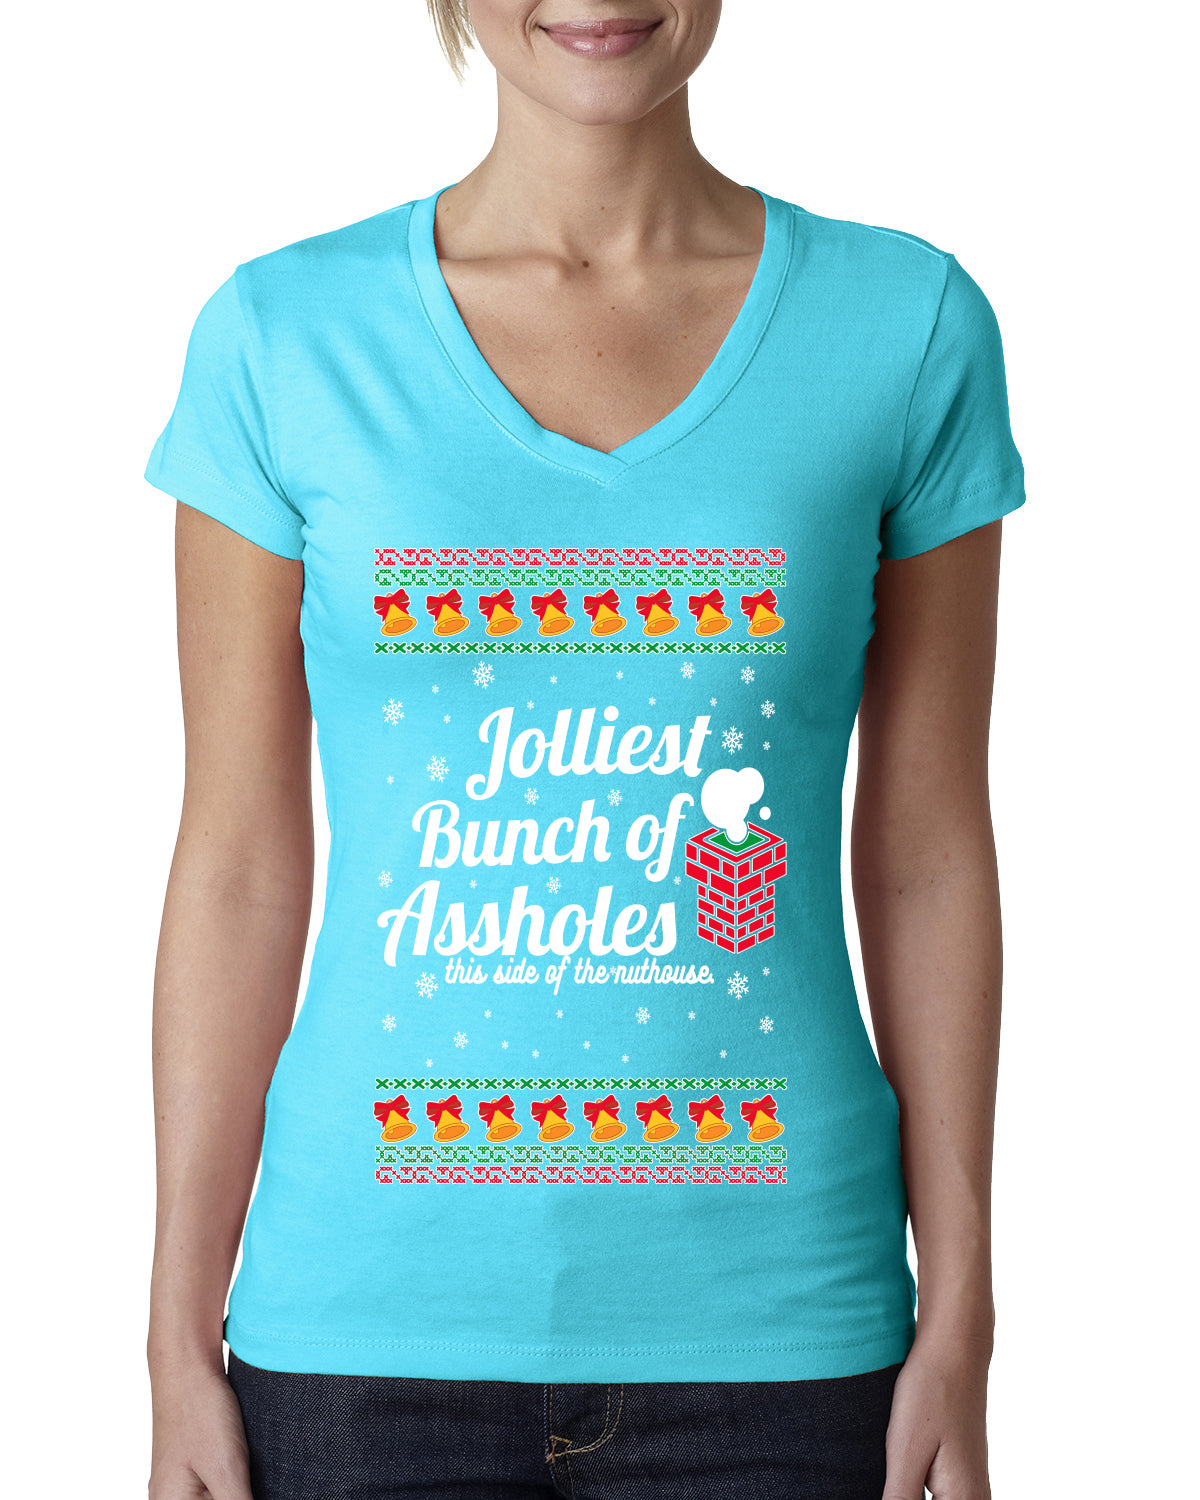 Jolliest Bunch of Assholes Xmas Movie Ugly Christmas Sweater Womens Junior Fit V-Neck Tee